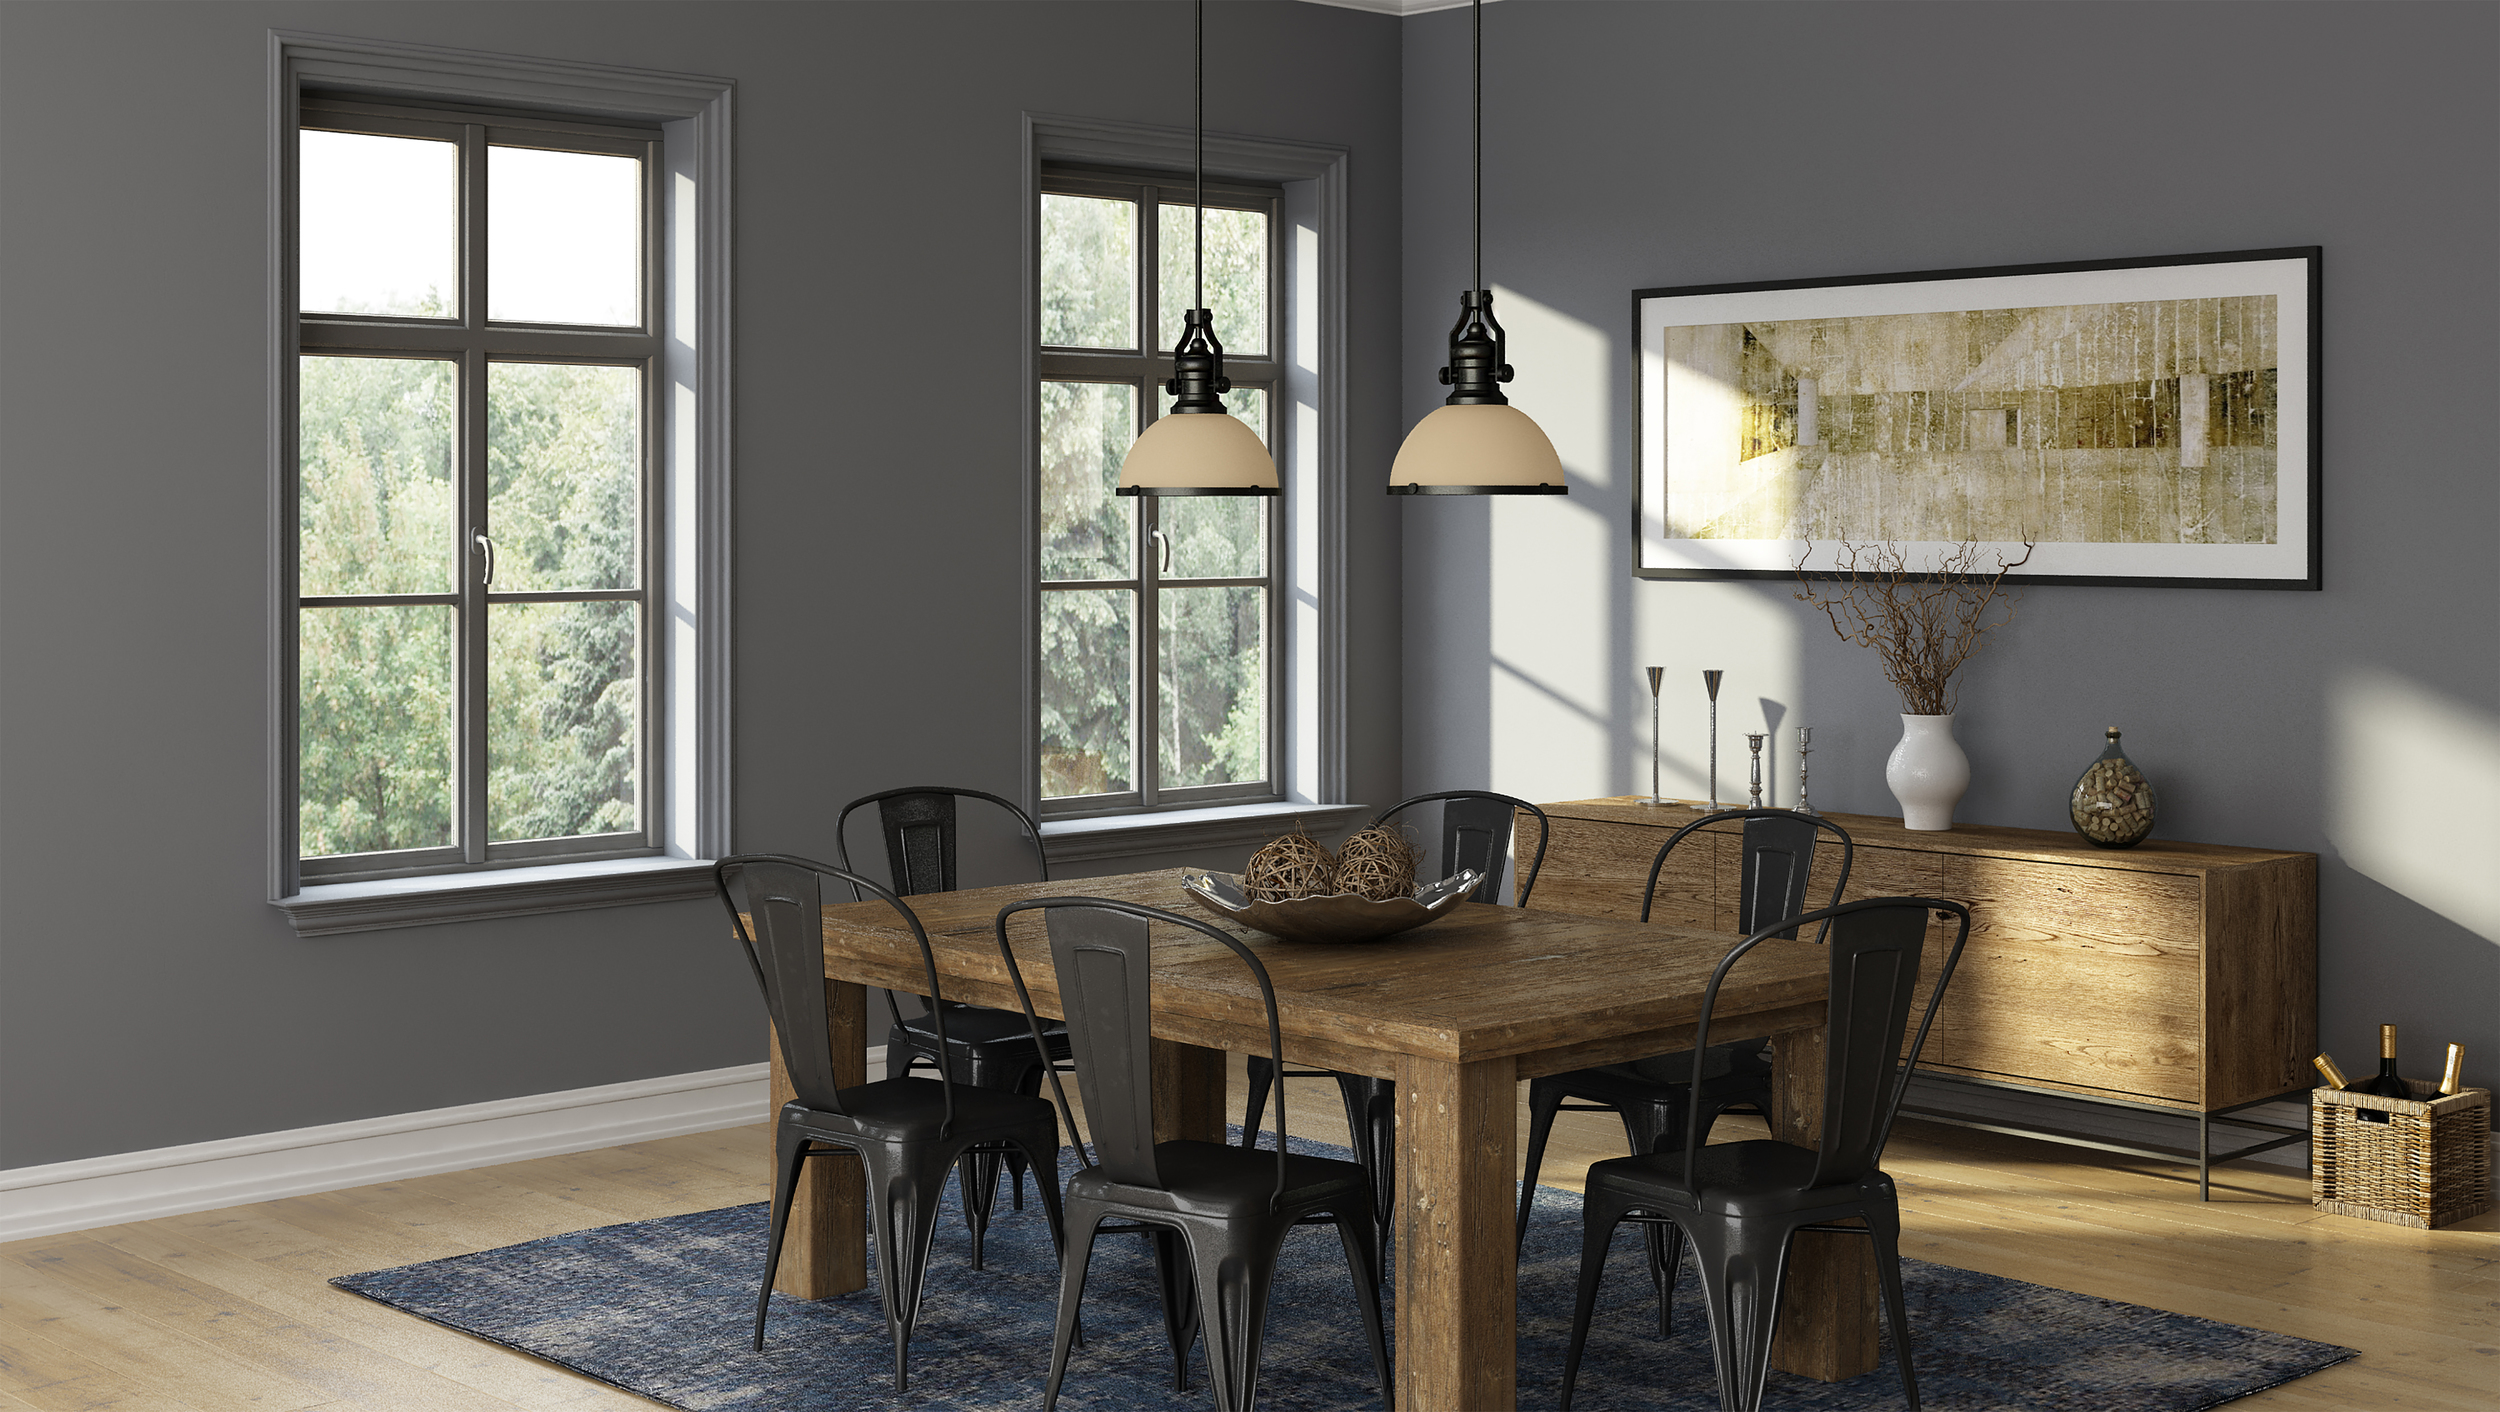 CGI Dining Room Lighting Application Photography